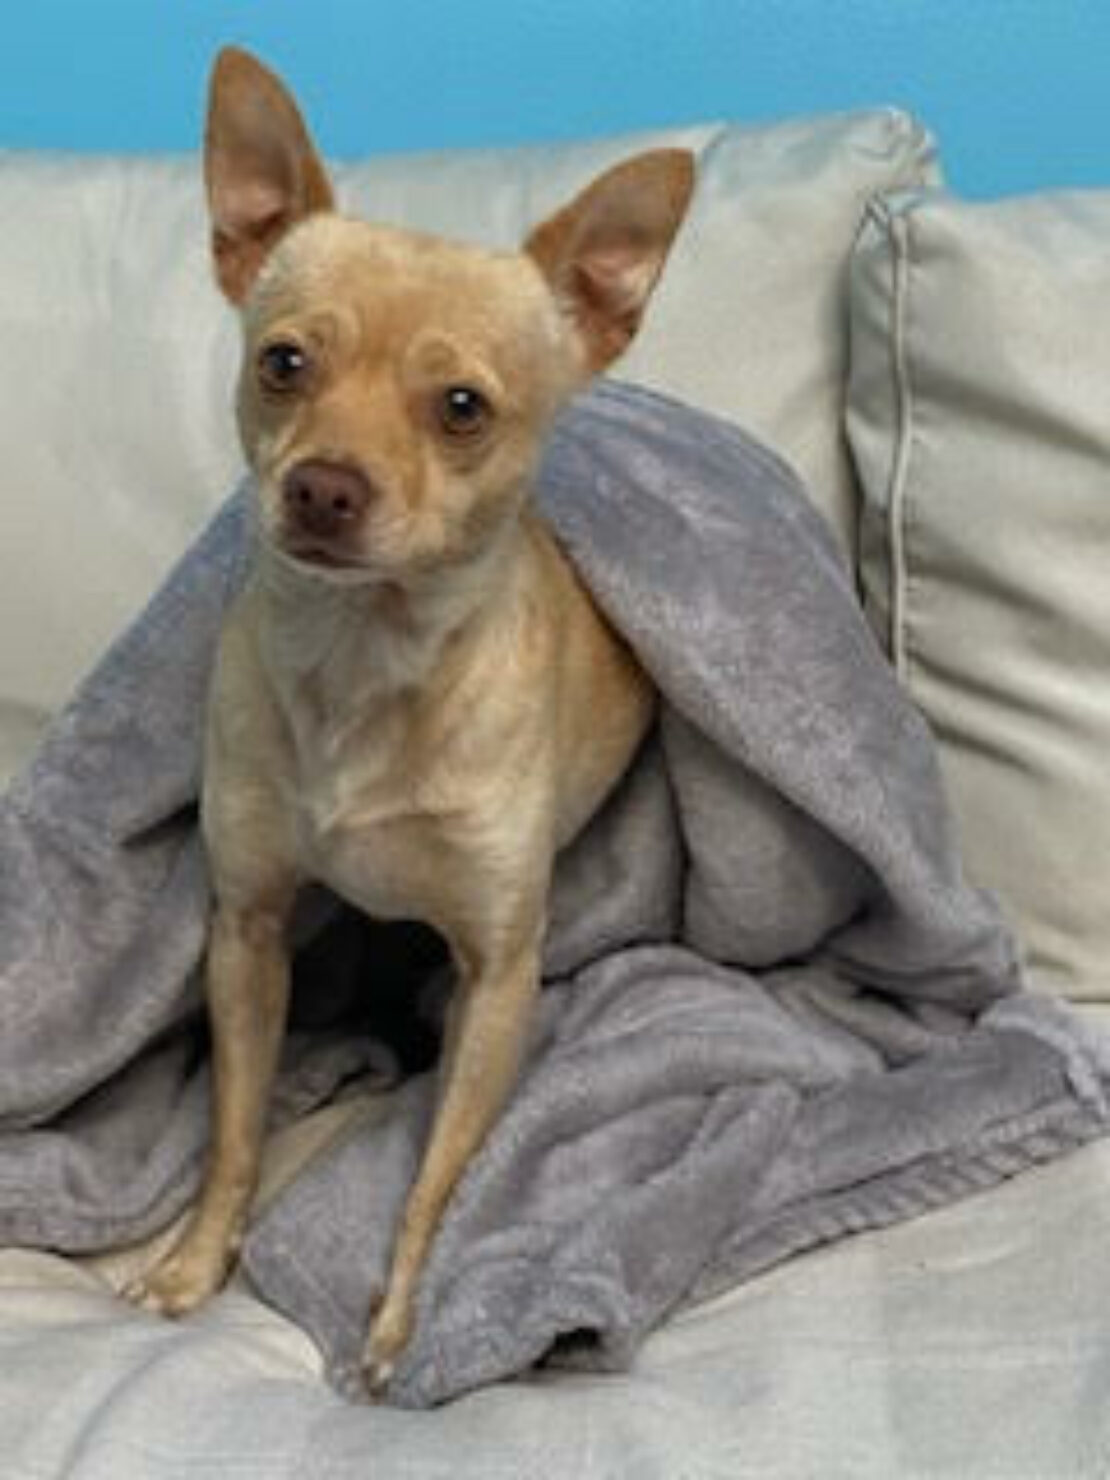 tan Chihuahua emerges from under a blanket and sits.